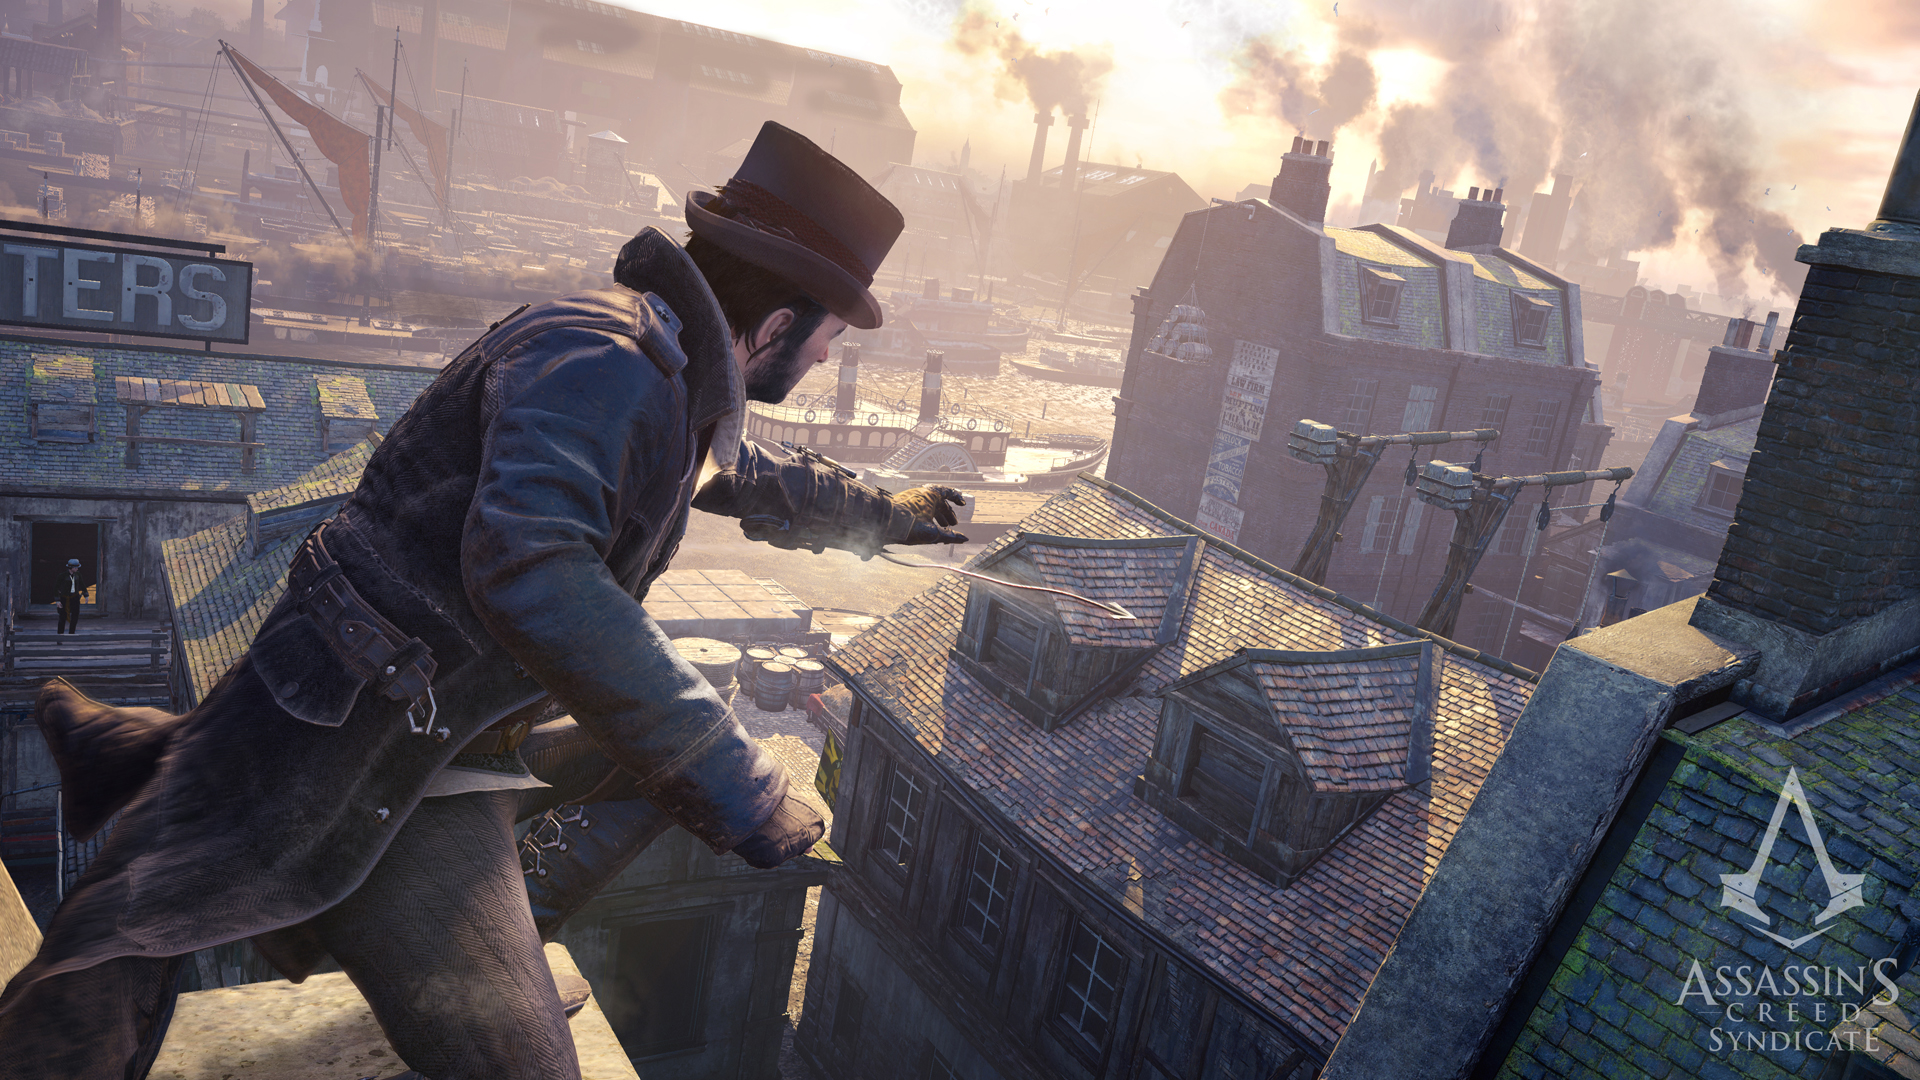 Assassin's Creed Syndicate image 3